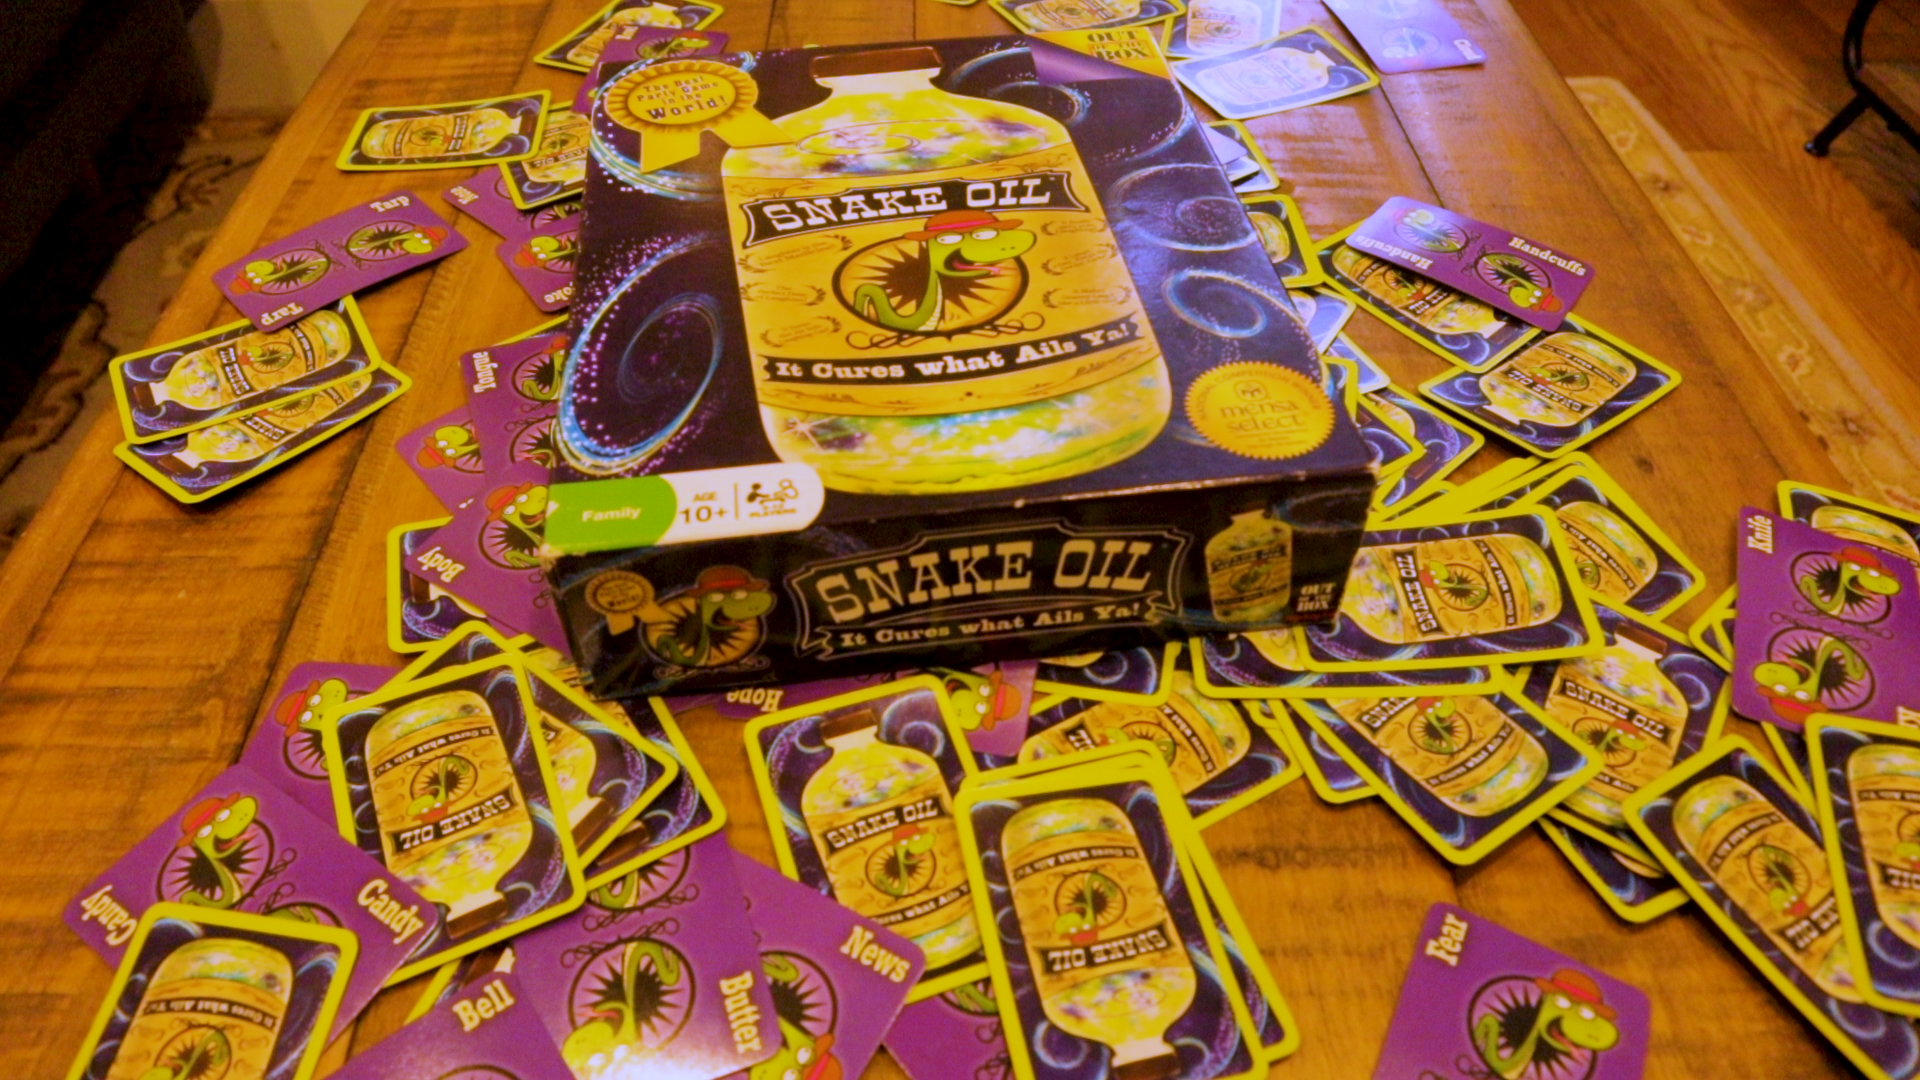 The box to the board game Snake Oil sits on a pile of cards from the game.